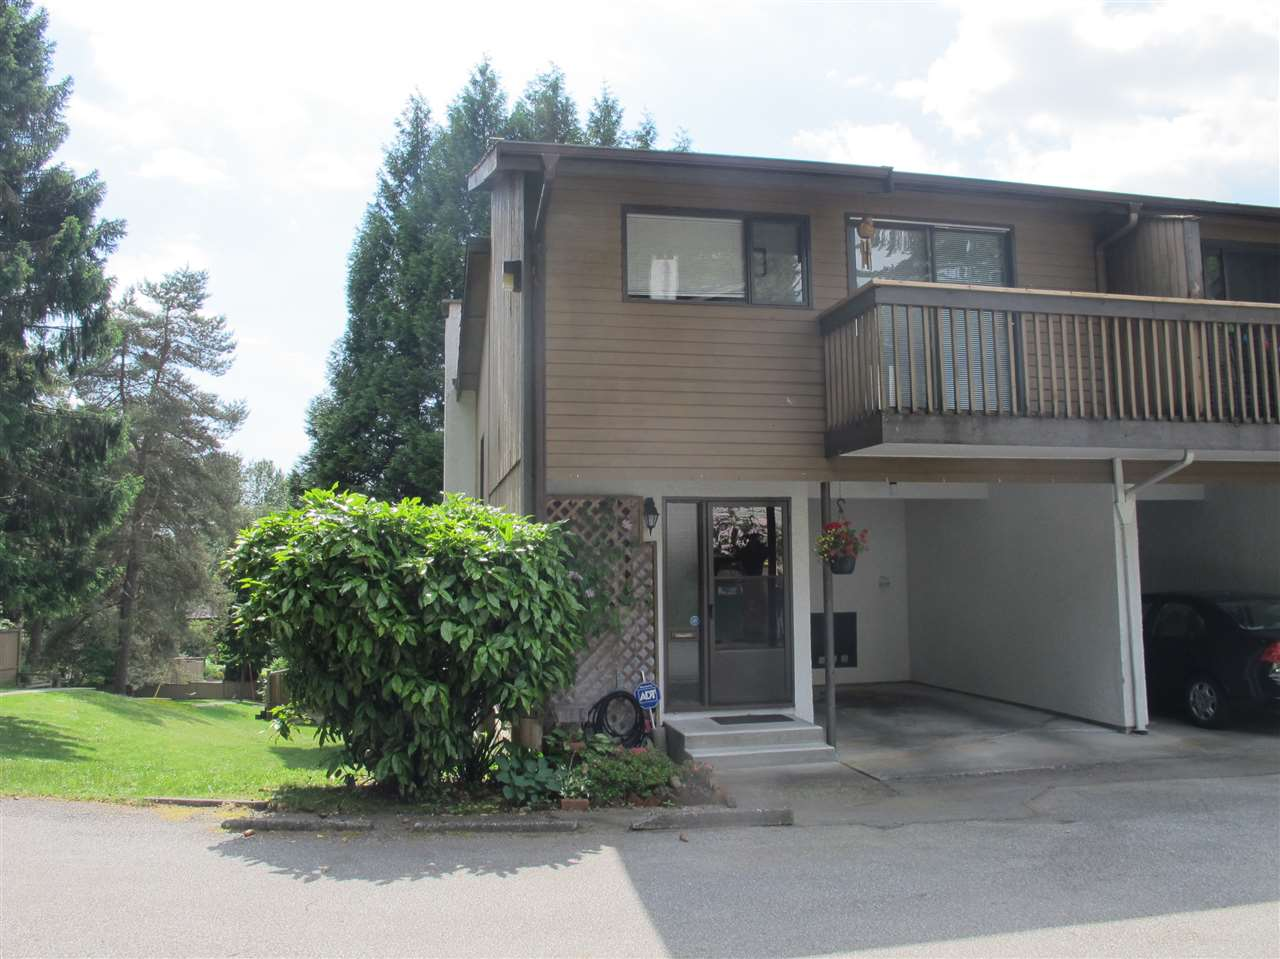 Main Photo: 2899 CORONA Drive in Burnaby: Simon Fraser Hills Townhouse for sale (Burnaby North)  : MLS® # R2182431